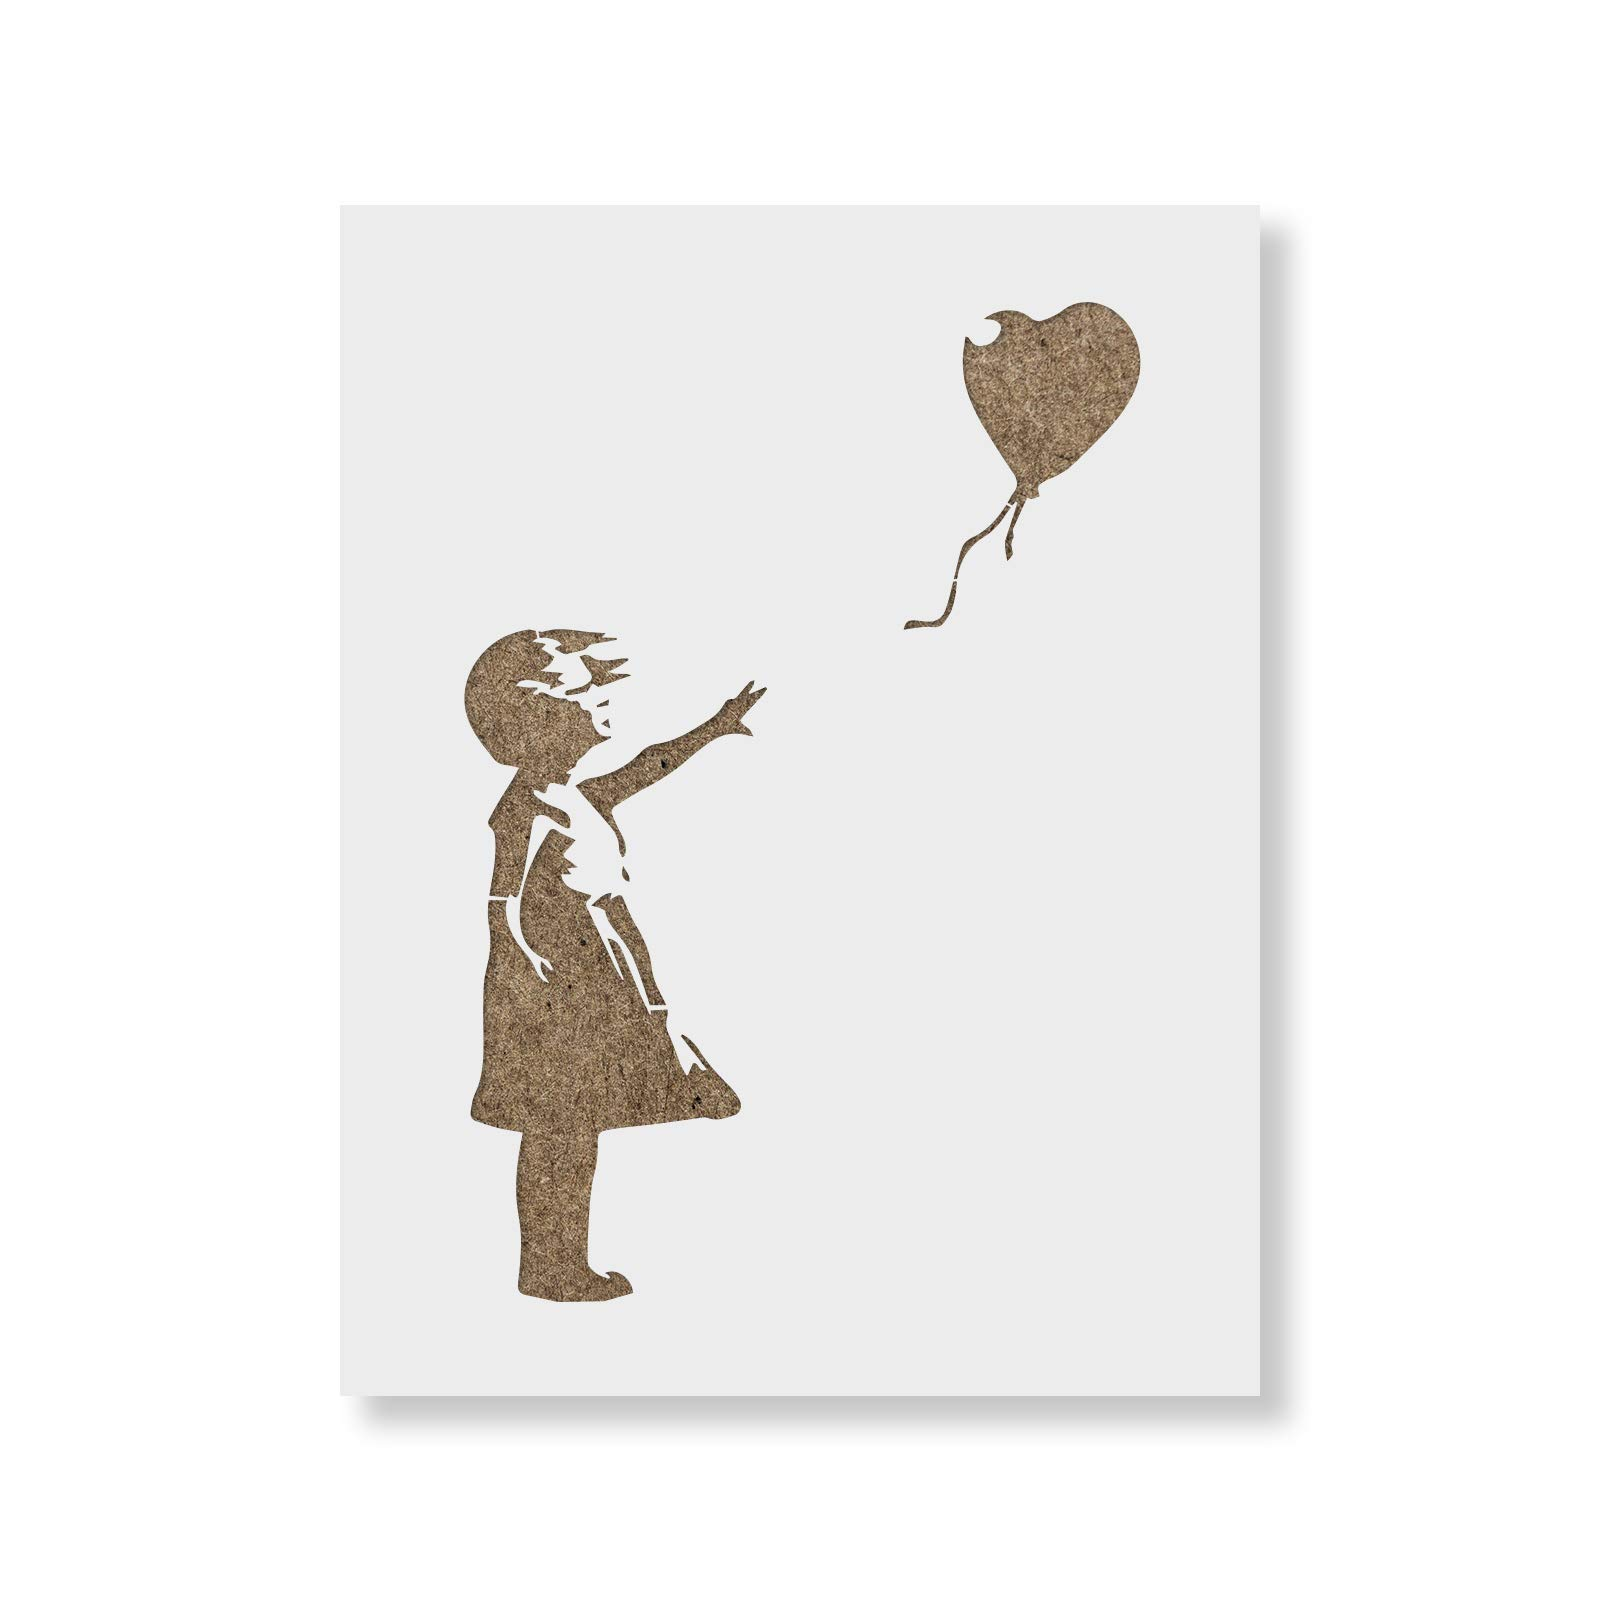 Girl with a Balloon Banksy Stencil for Walls and Crafts - Reusable Banksy Stencils for Painting in Small & Large Sizes - Made in USA